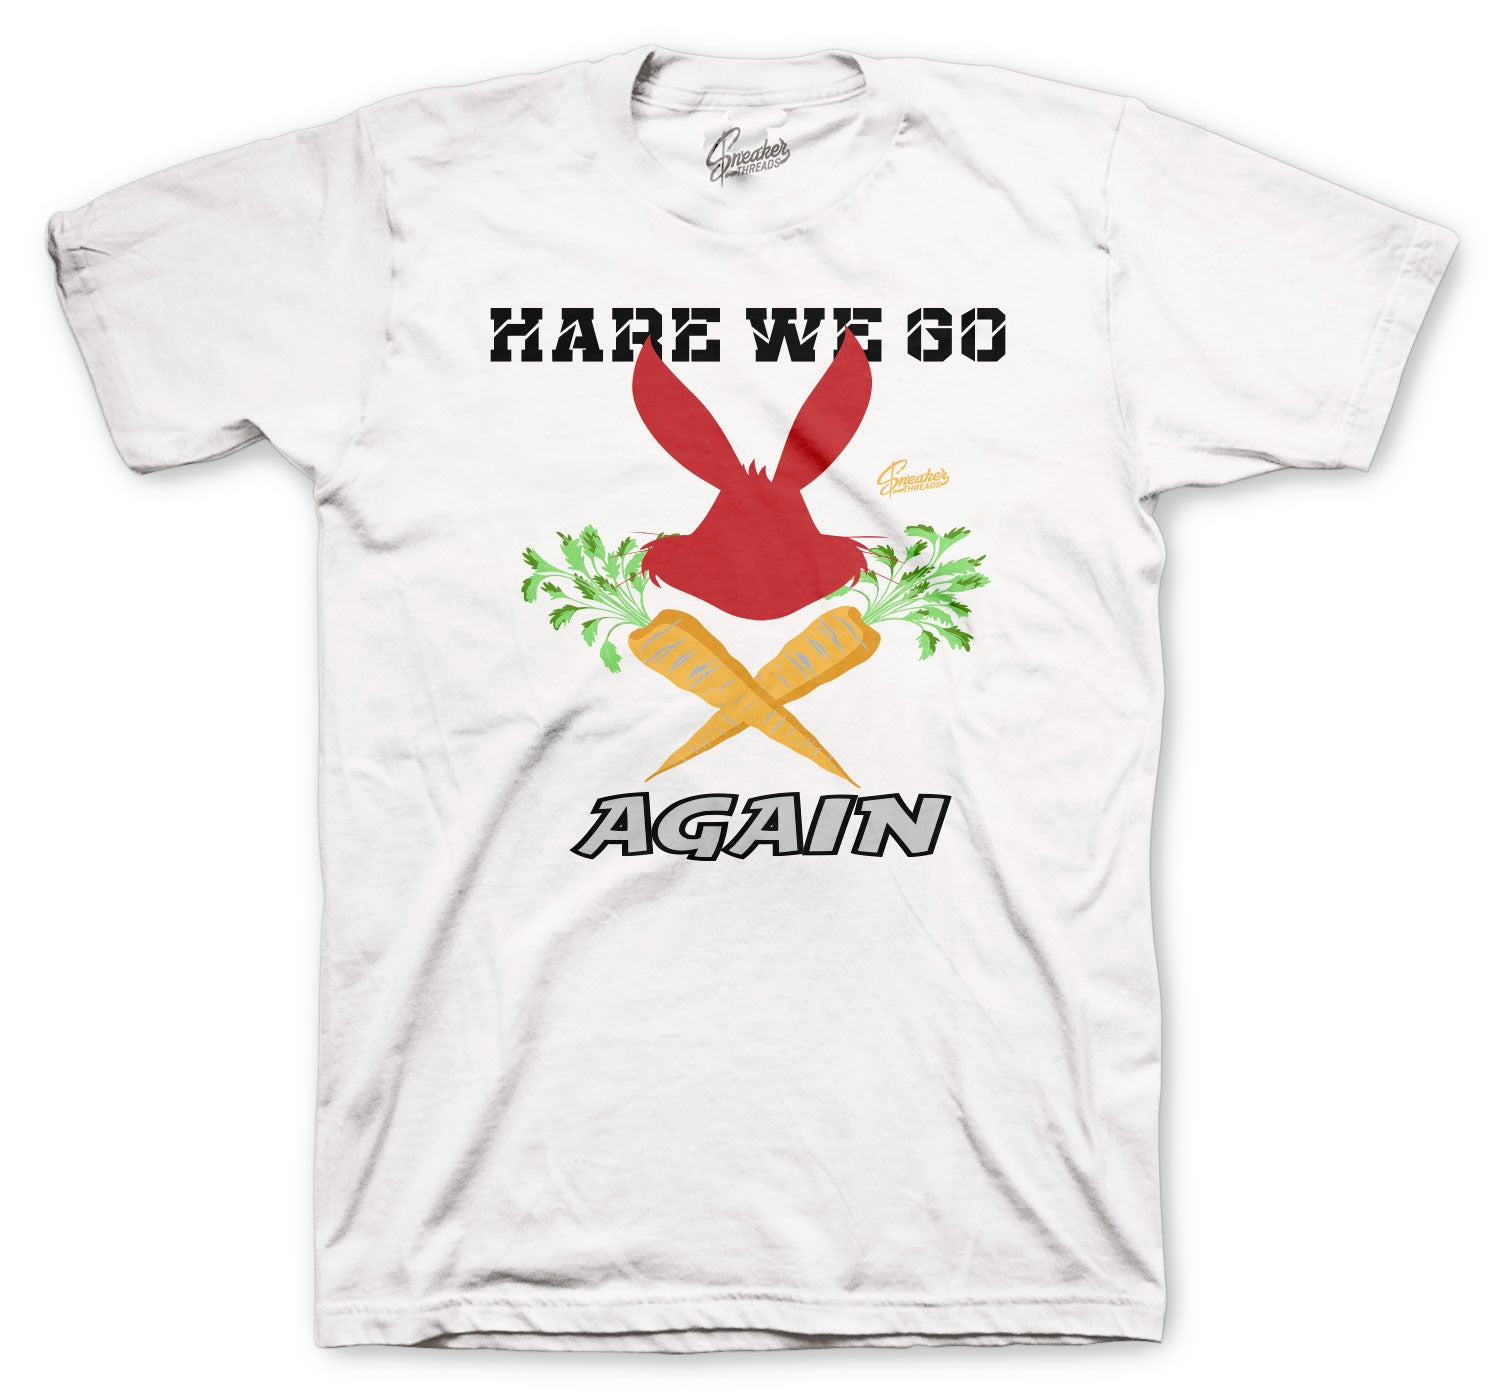 Jordan 6 Hare sneaker collection matches with mens tee collection perfectly